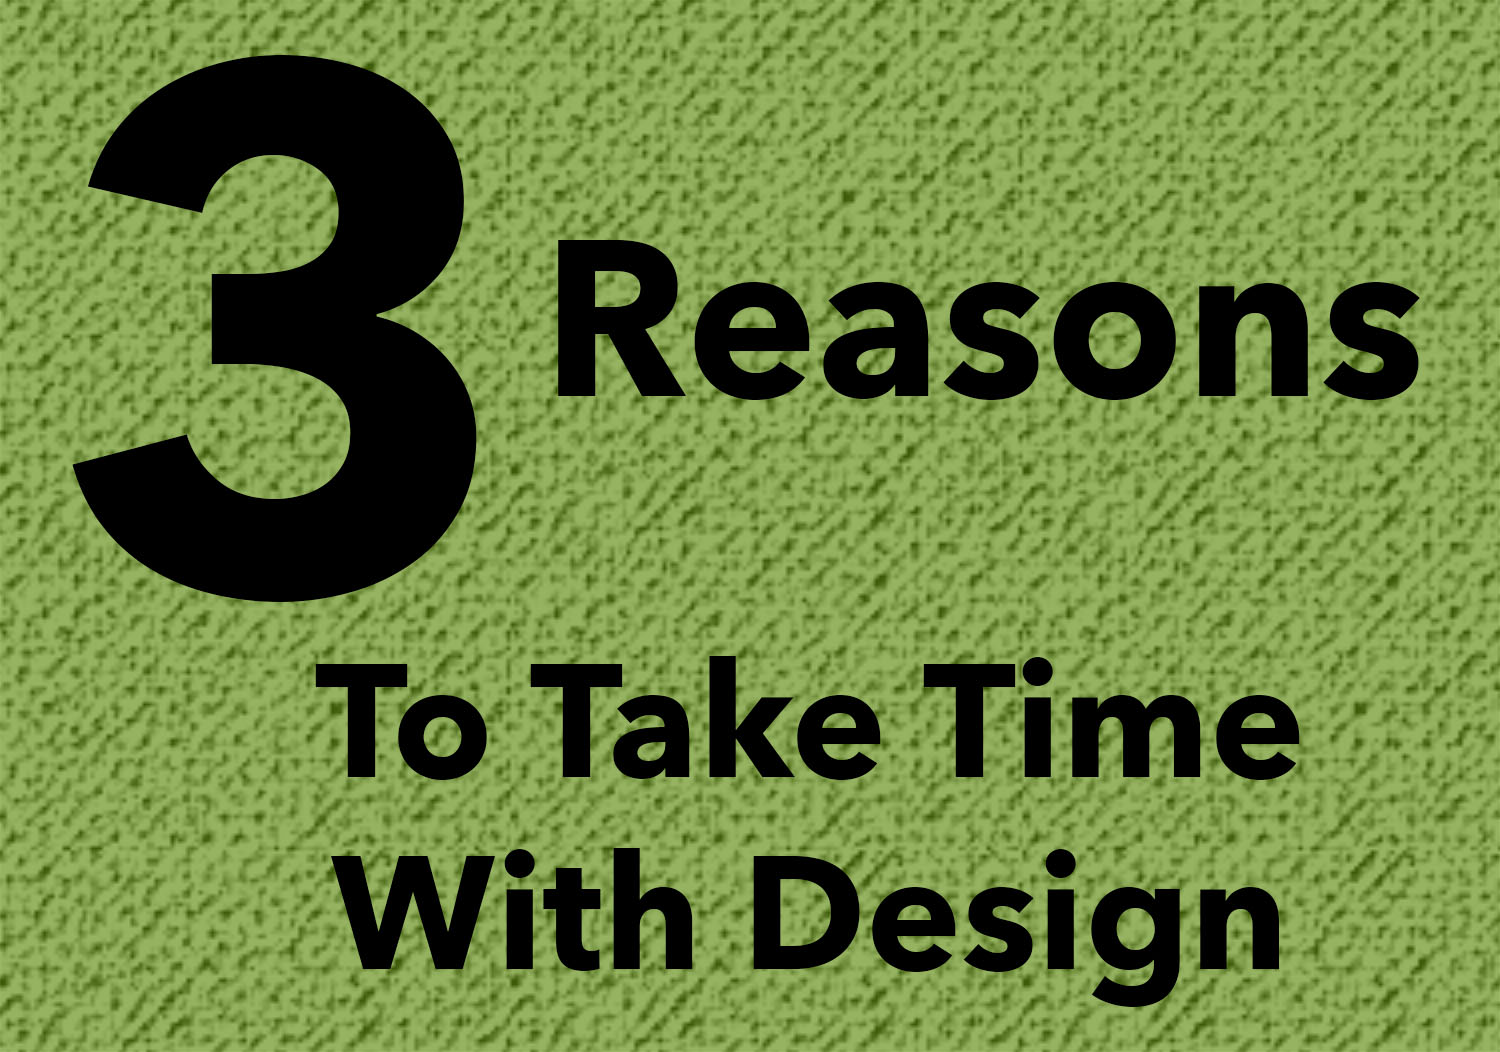 3 Reasons To Take Time With Design